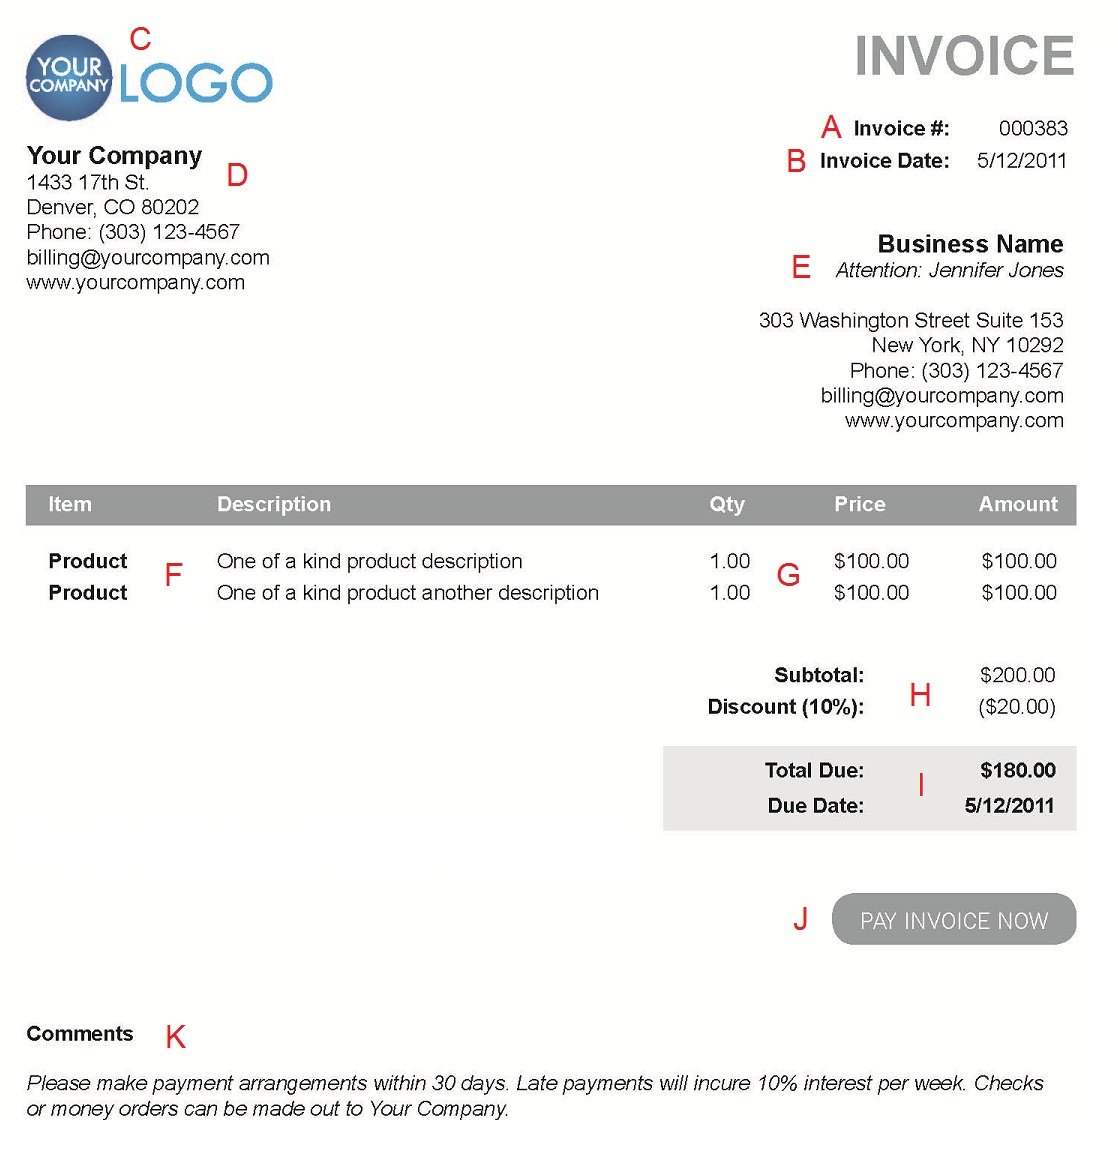 Atvingus  Splendid The  Different Sections Of An Electronic Payment Invoice With Hot A  With Charming Tax Exempt Receipt Also Creating Receipts In Addition Chinese Receipt And Receipts Scanner App As Well As Sephora Return Policy In Store No Receipt Additionally Template For Receipts From Paysimplecom With Atvingus  Hot The  Different Sections Of An Electronic Payment Invoice With Charming A  And Splendid Tax Exempt Receipt Also Creating Receipts In Addition Chinese Receipt From Paysimplecom